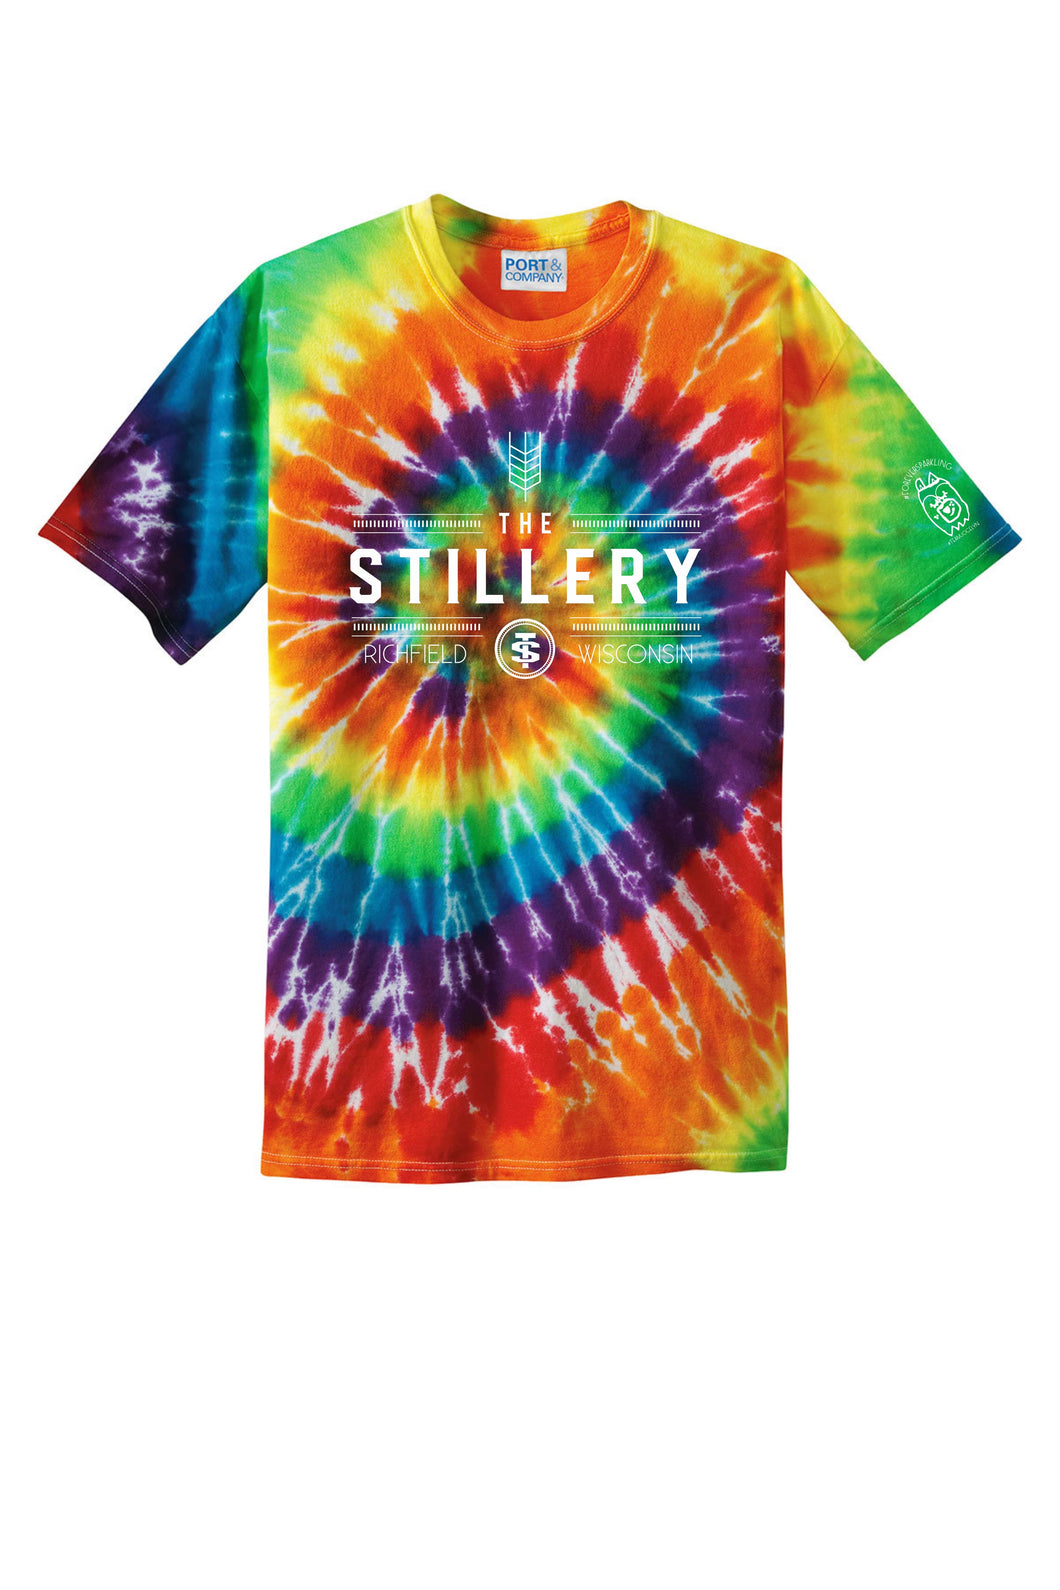 Stillery Tie Dye t-shirt in honor of Jocelyn!